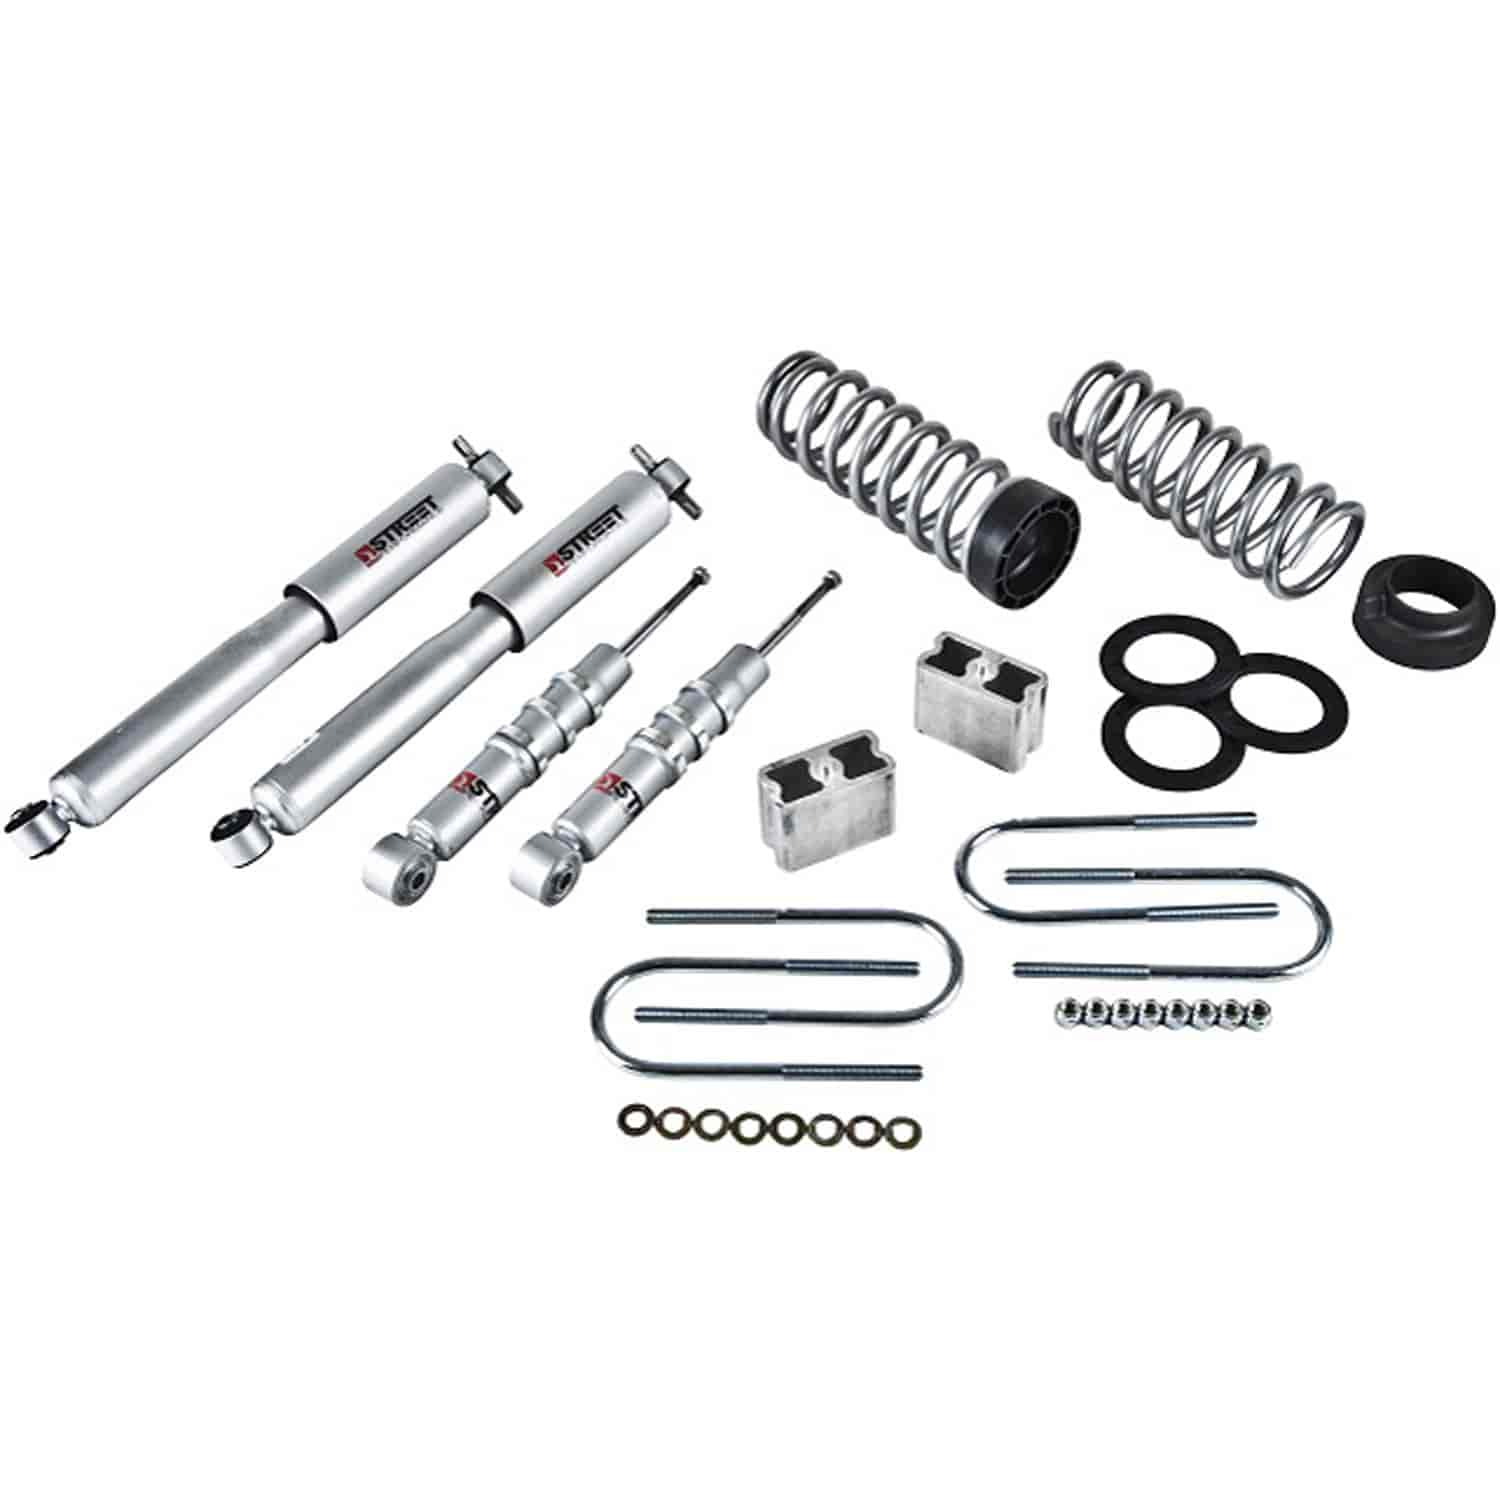 Belltech 602sp Complete Lowering Kit For Chevy Colorado Gmc Canyon